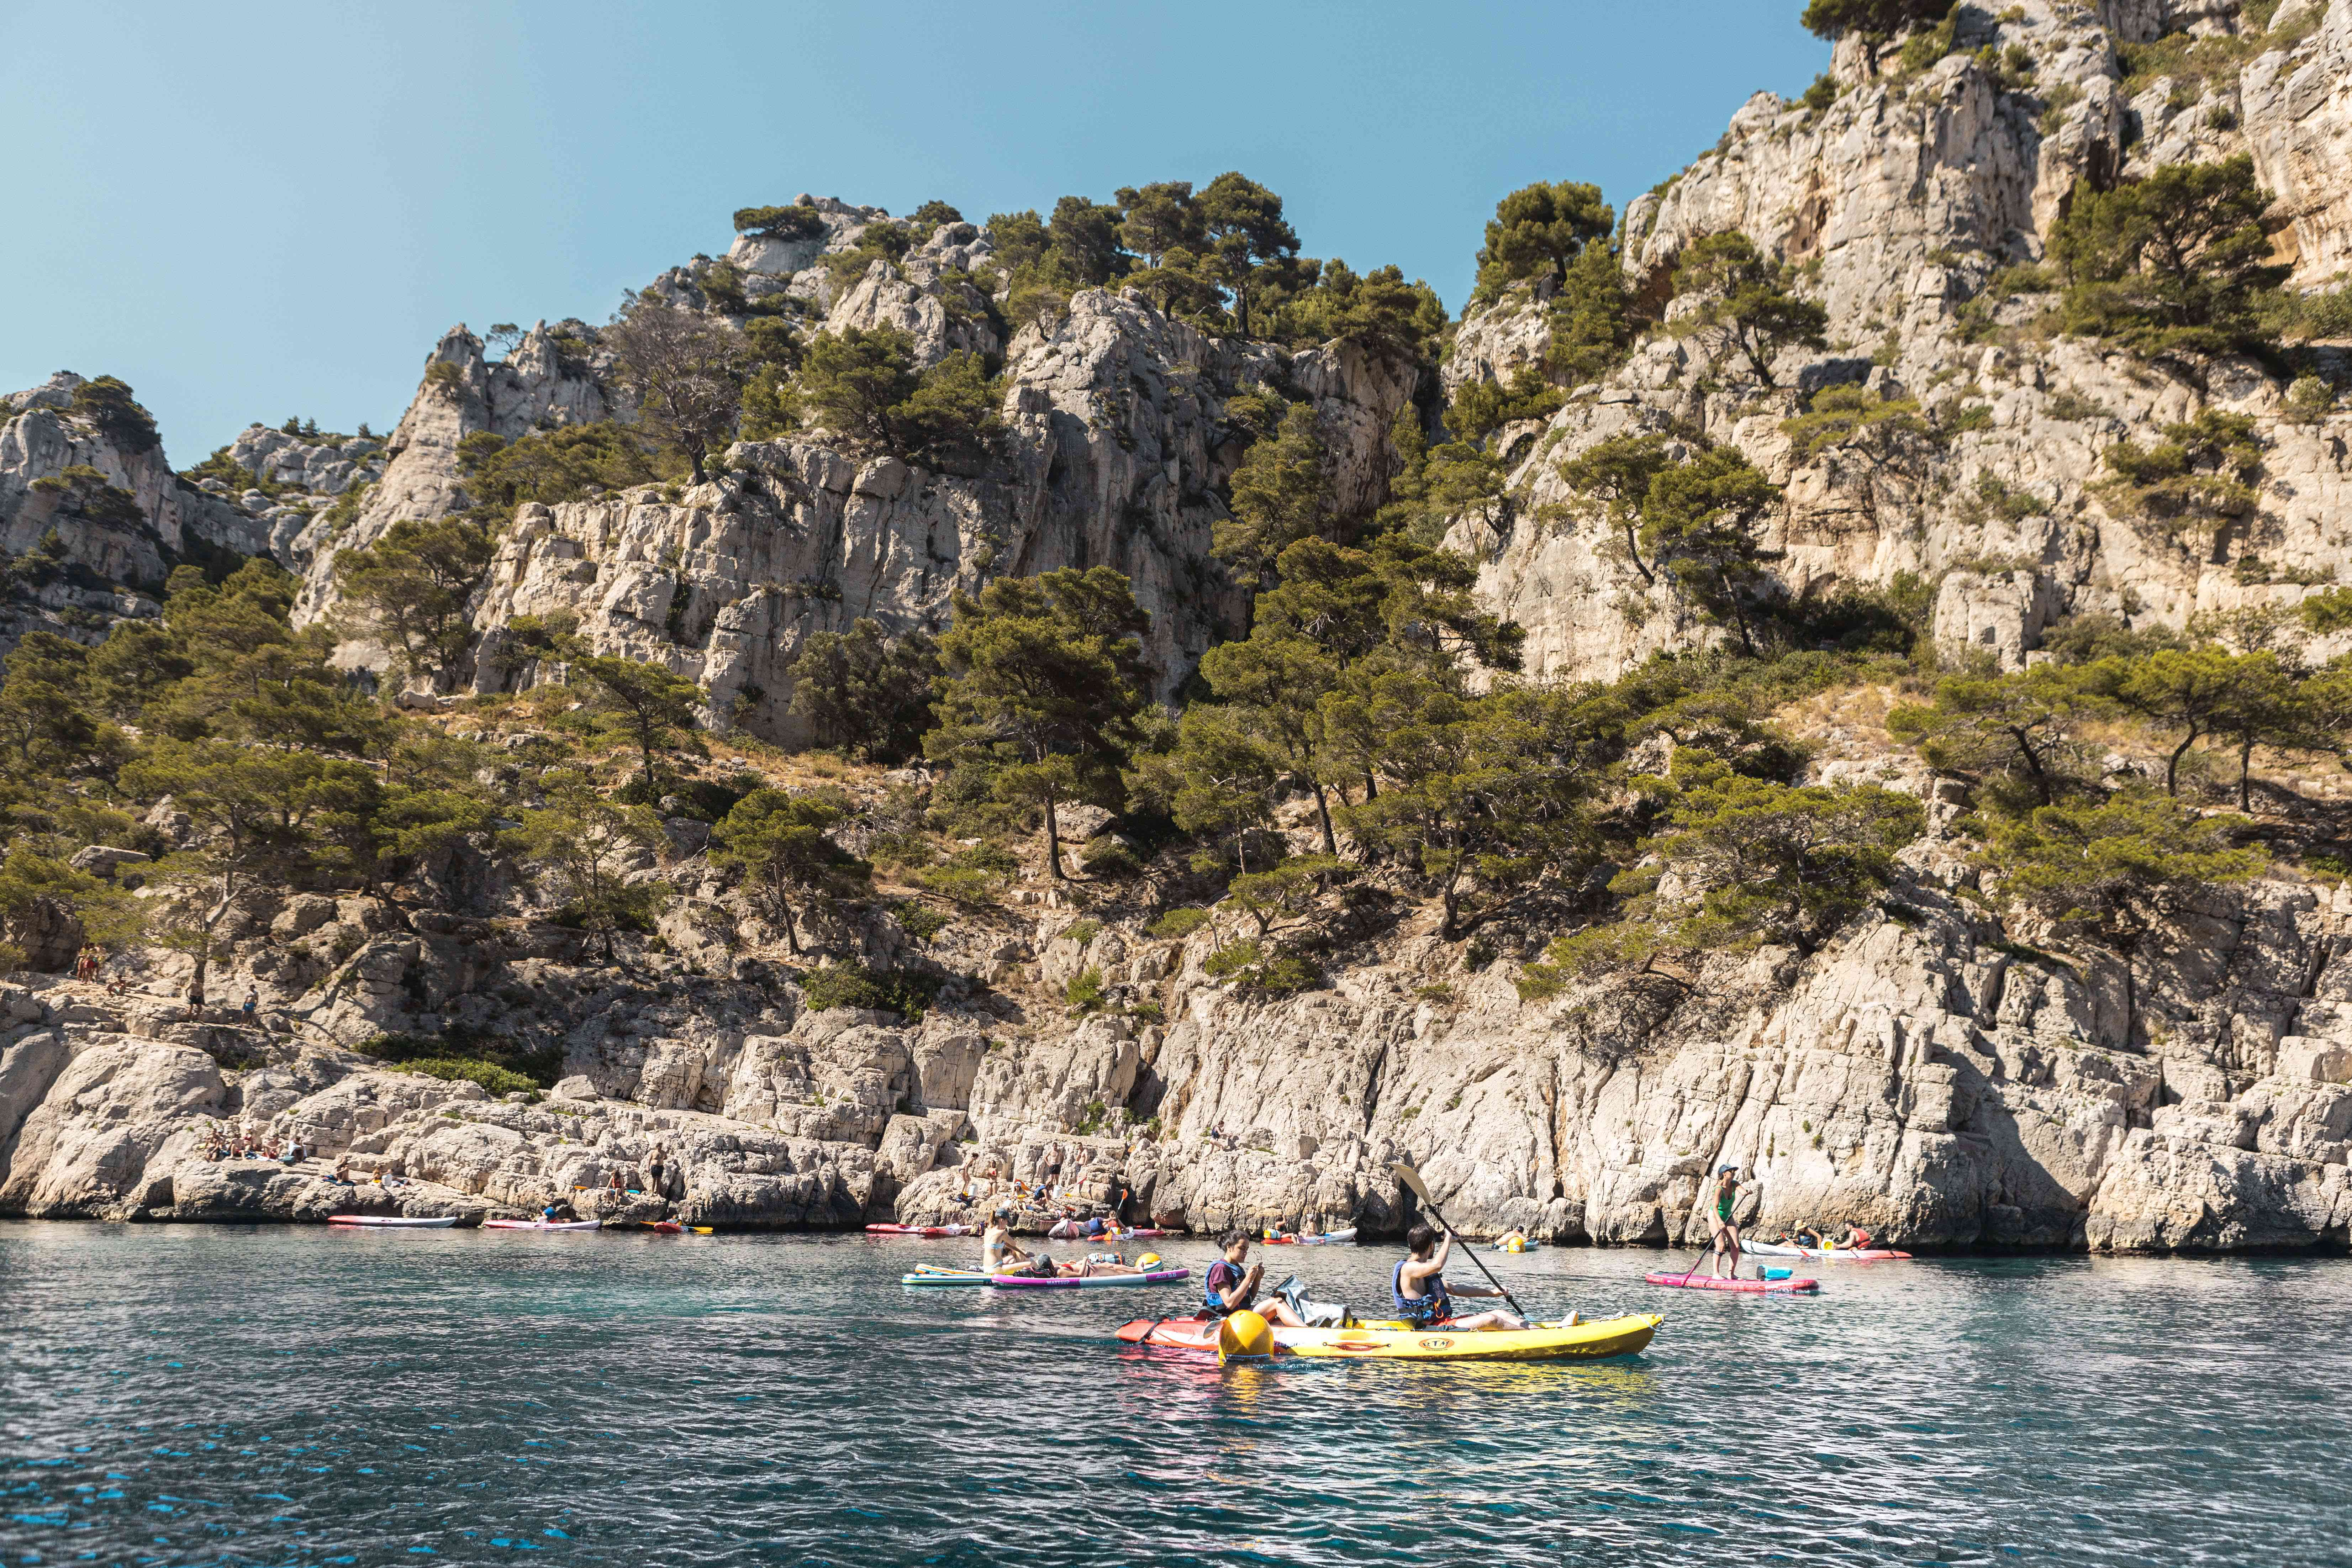 People Kayaking in Calanques National Park